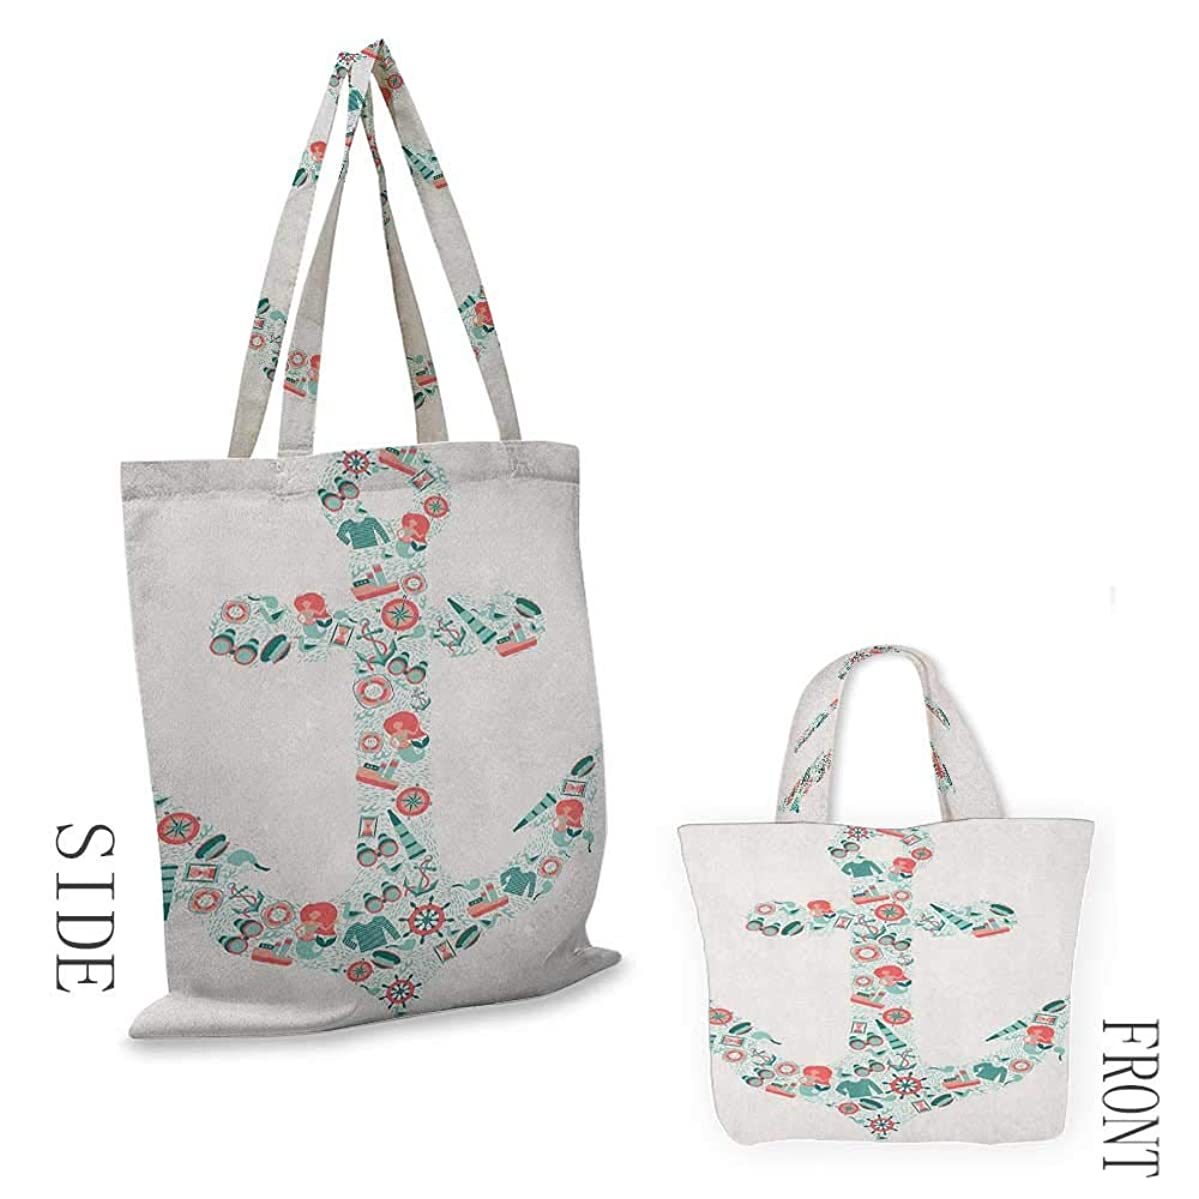 """Tote bag AnchorNautical Icon Shape with Binoculars Captain Hat Compass Mermaid Figures Seafoam Coral Teal18""""W x 16""""H"""